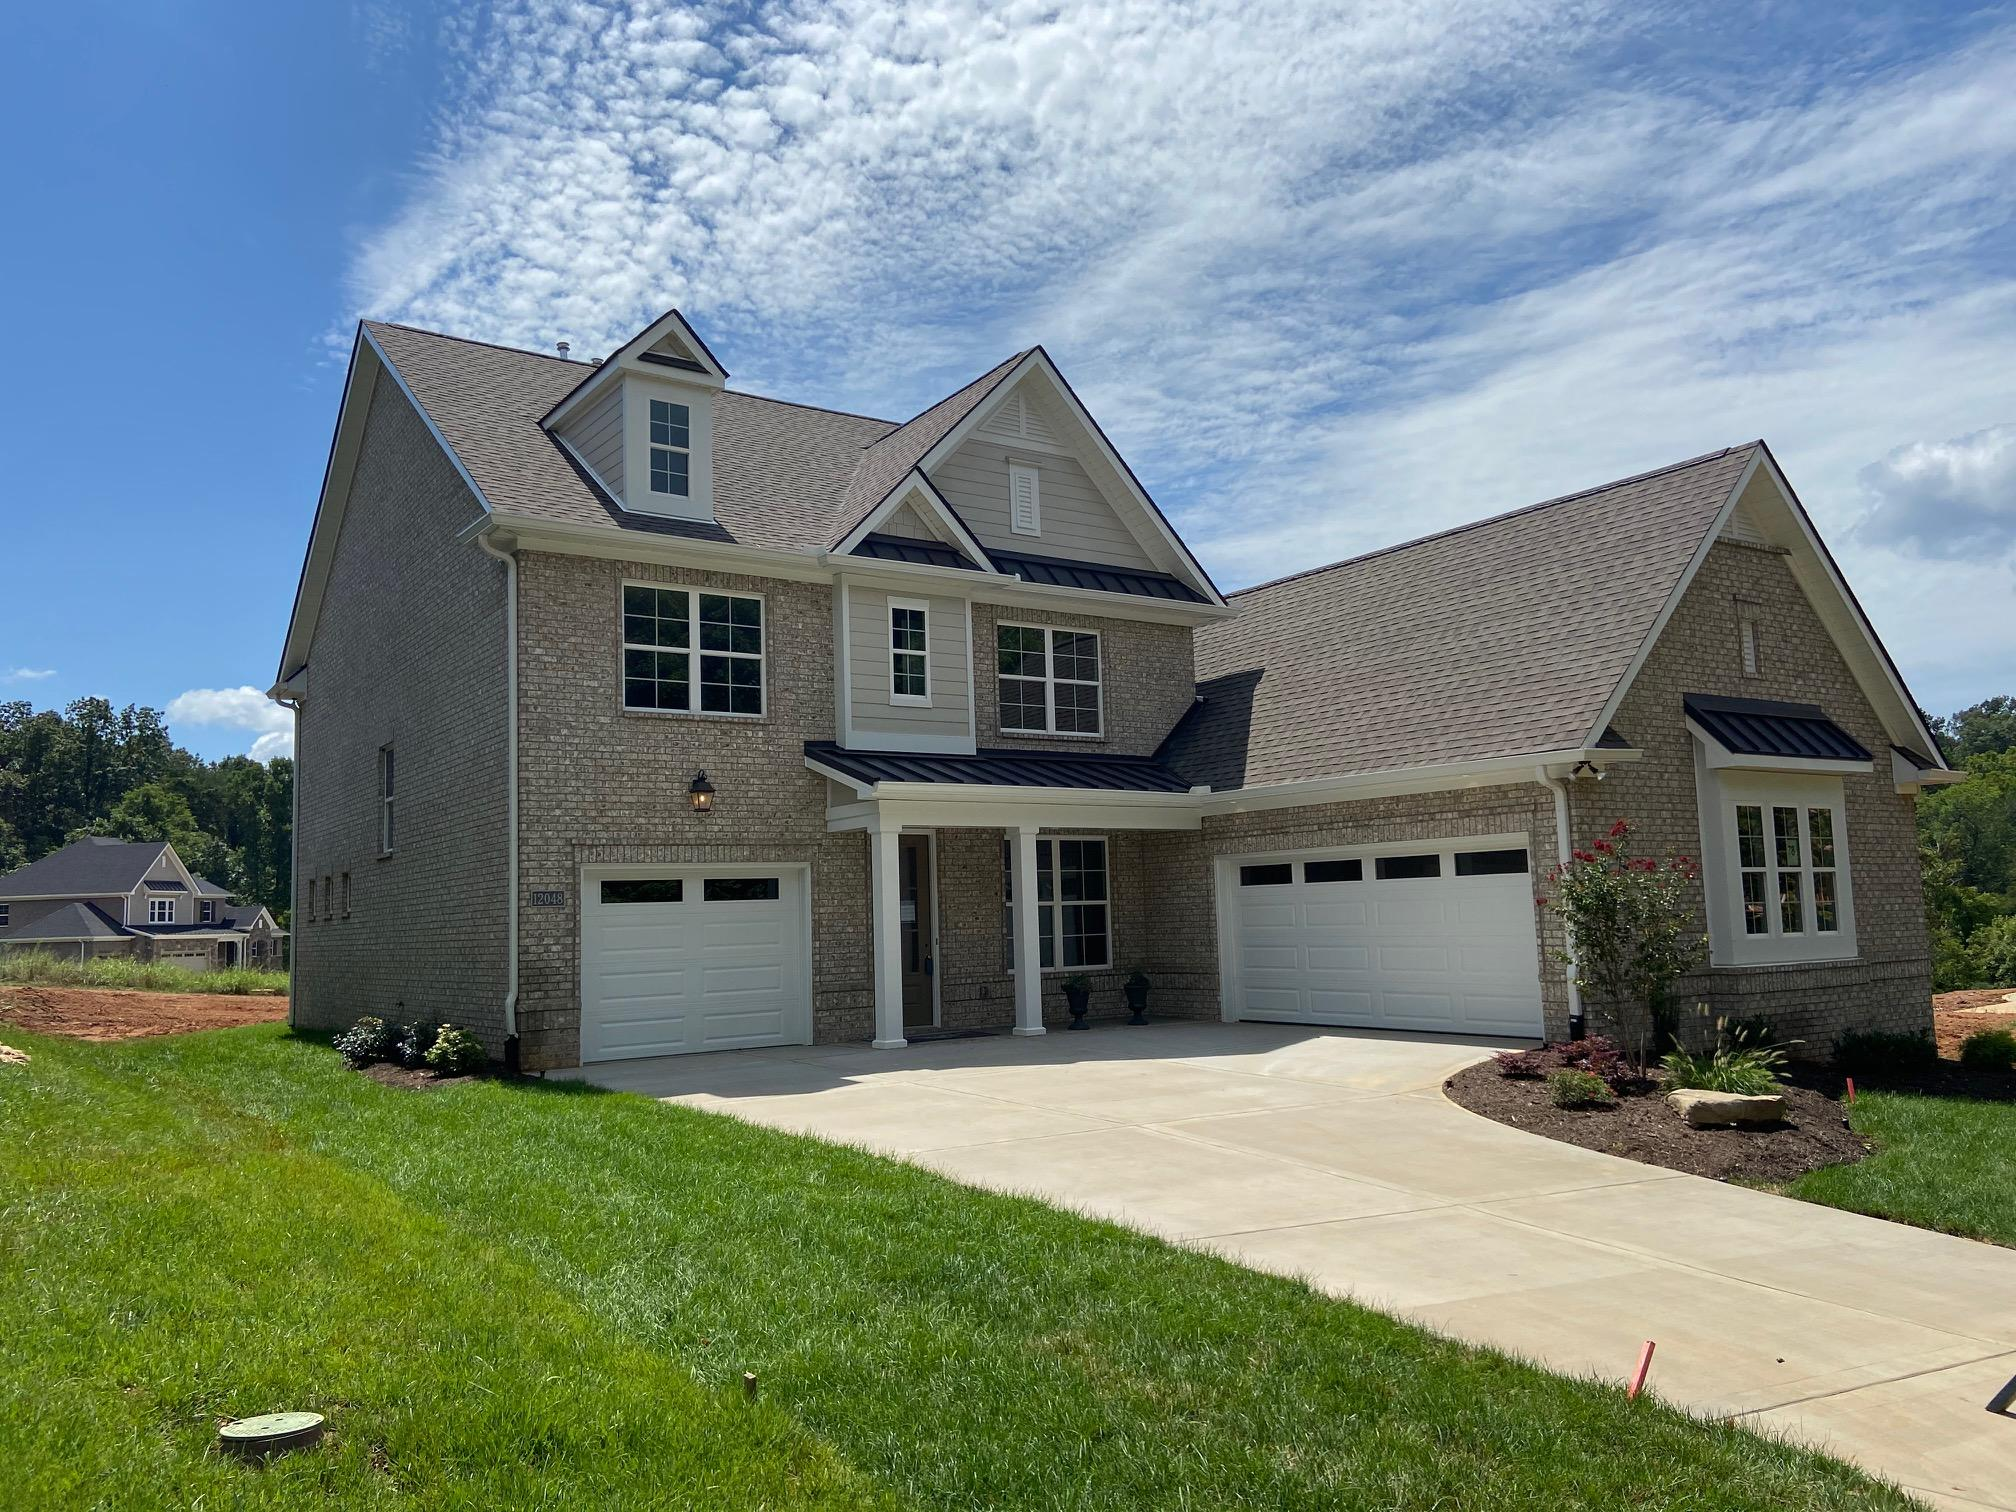 Lot 78 Boyd Chase Blvd, Knoxville, Tennessee, United States 37934, 4 Bedrooms Bedrooms, ,3 BathroomsBathrooms,Single Family,For Sale,Boyd Chase Blvd,1128572